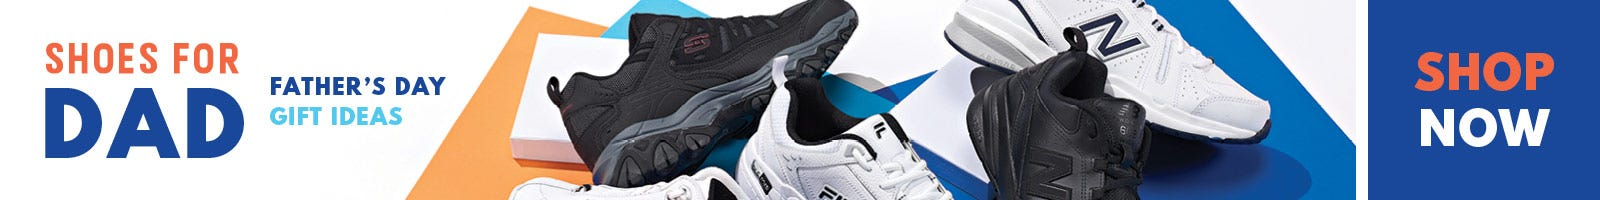 Give Dad the perfect pair of shoes for Father's Day